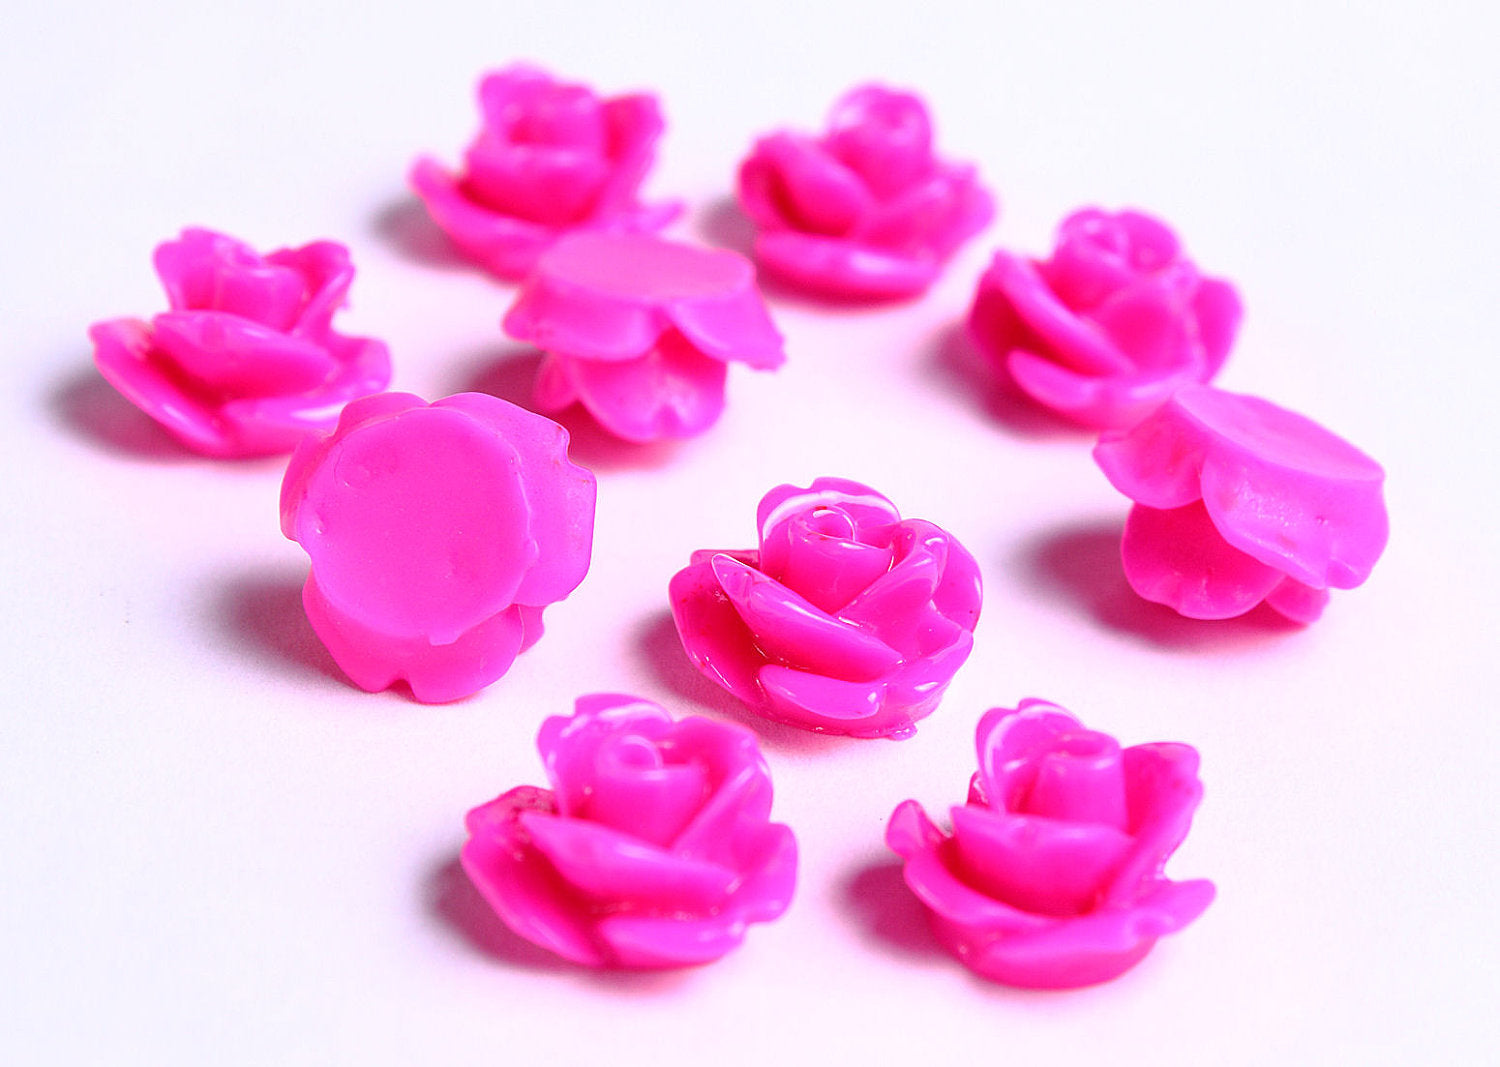 10mm Fuschia rose cabochons - 3D cabochons - resin rosebud cabochon - dark pink cabochons - 10 pieces (086)